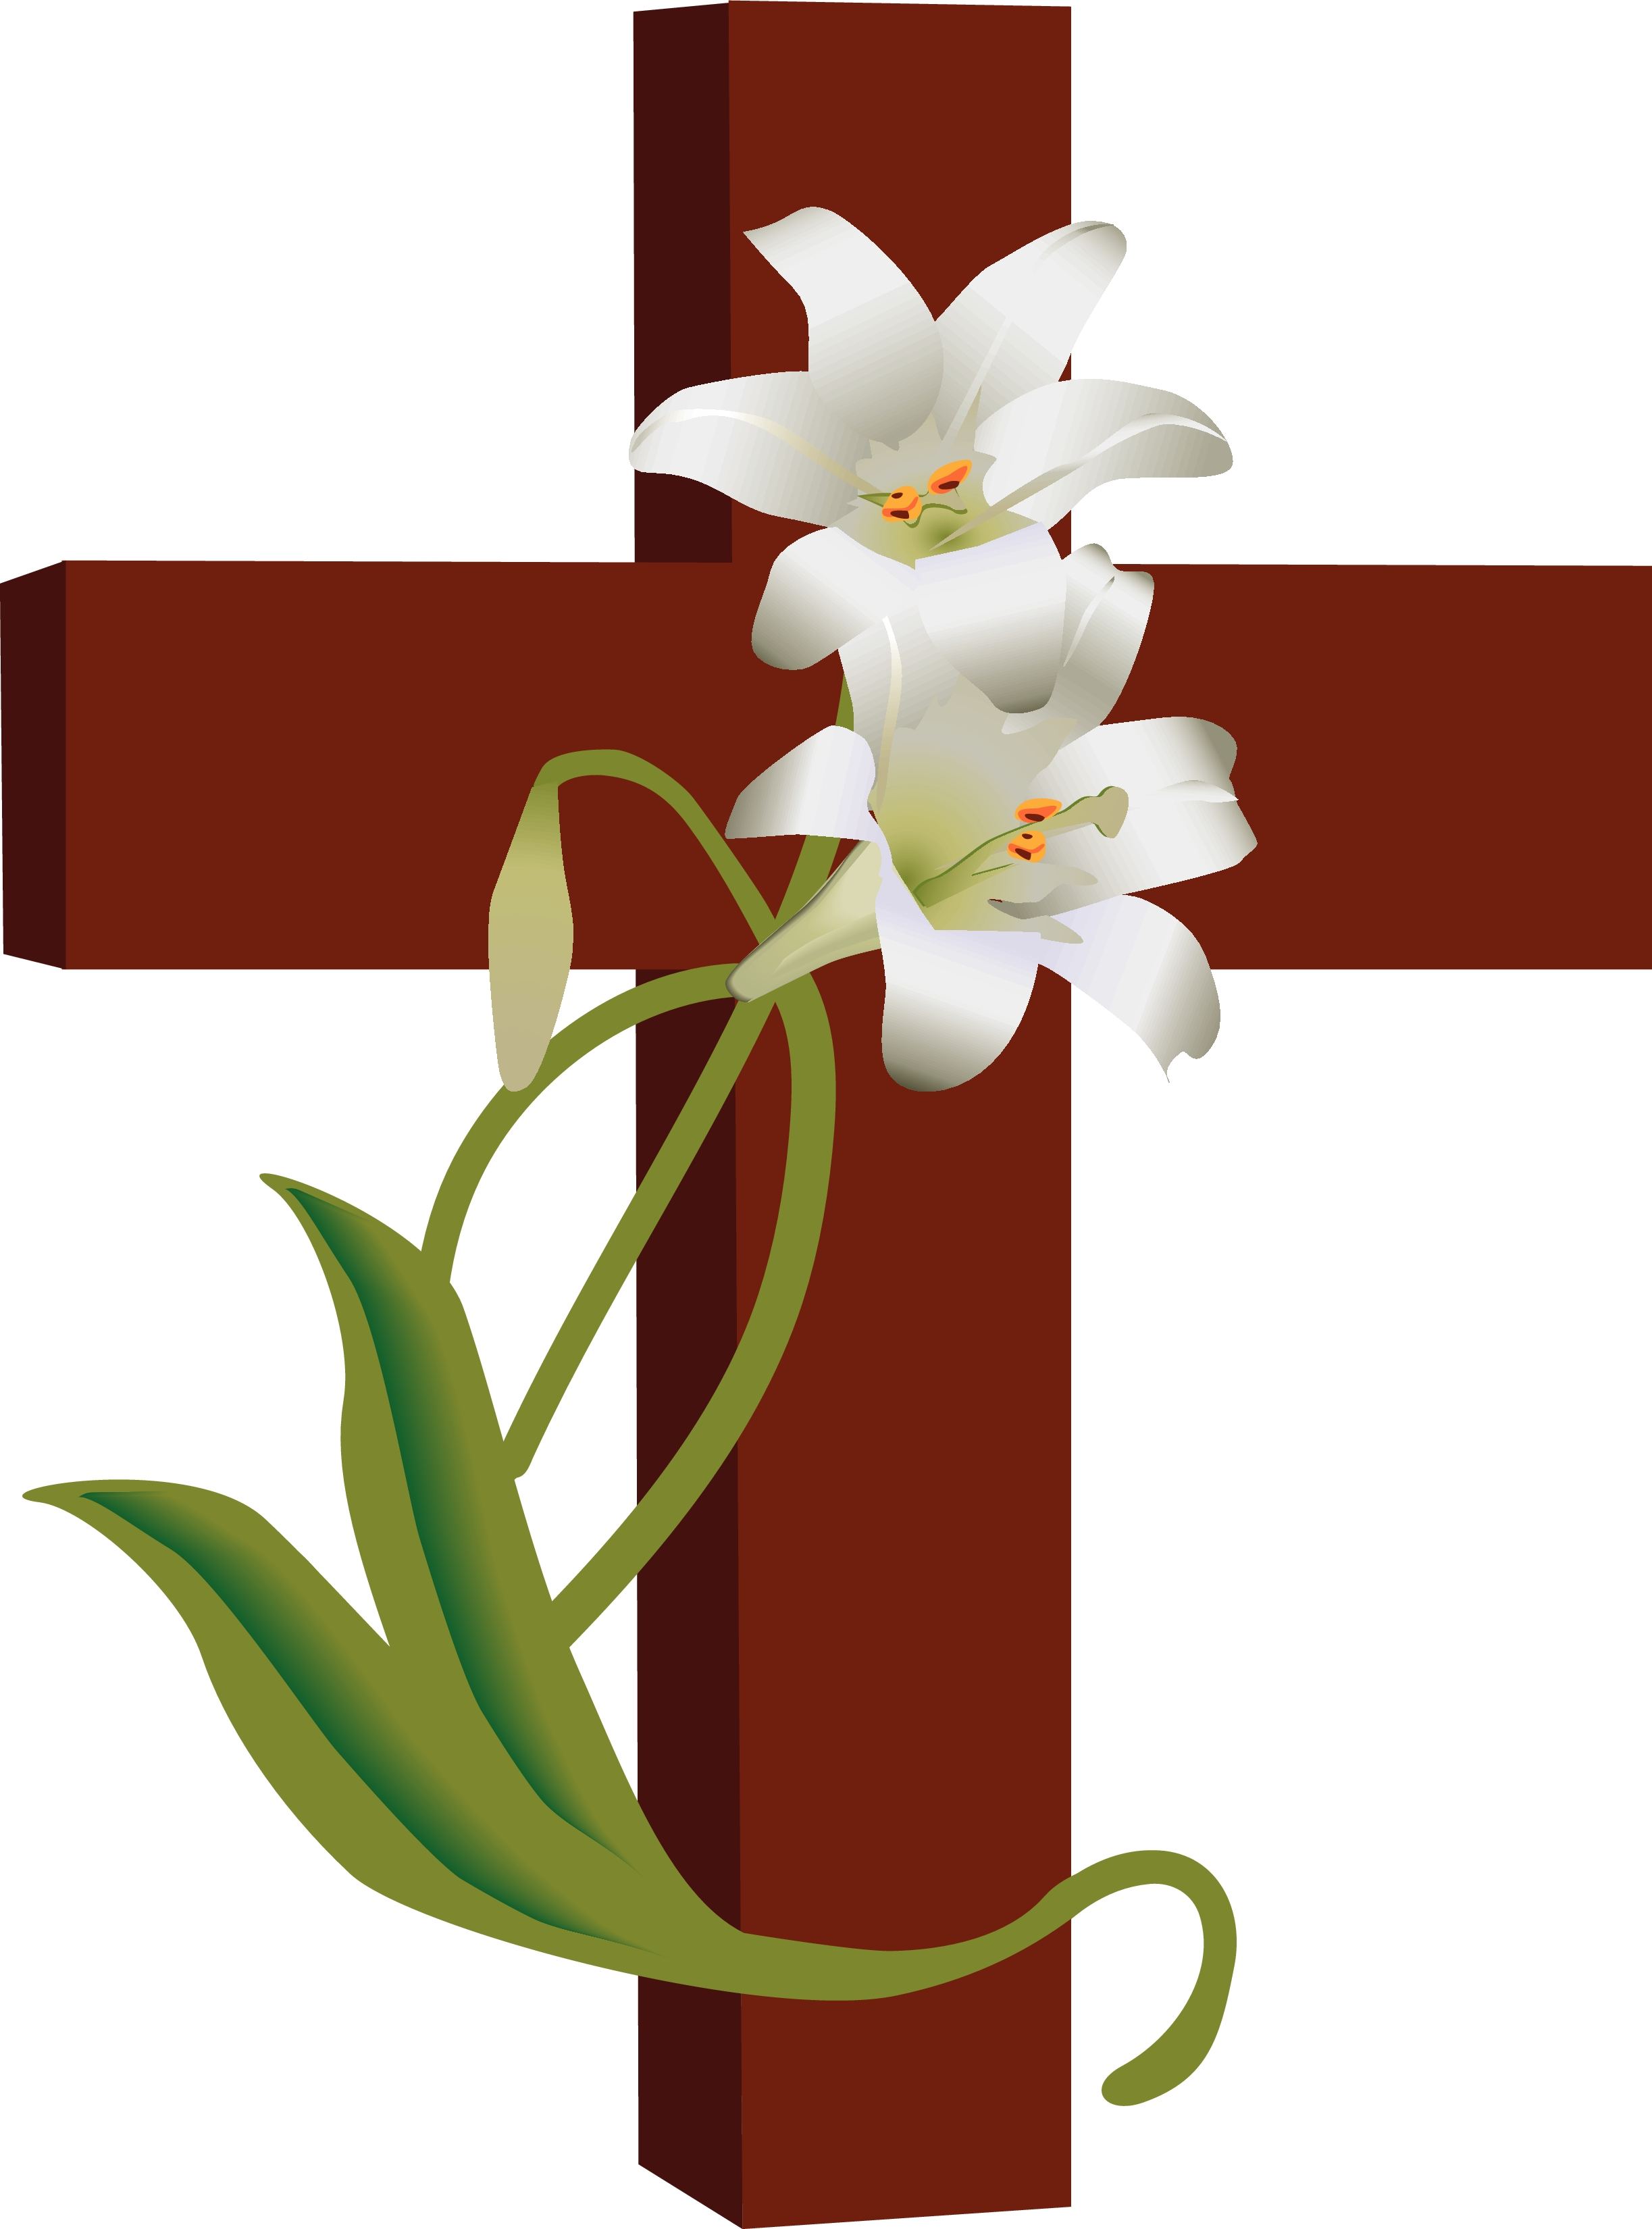 Free Christian Funeral Cliparts, Download Free Clip Art.